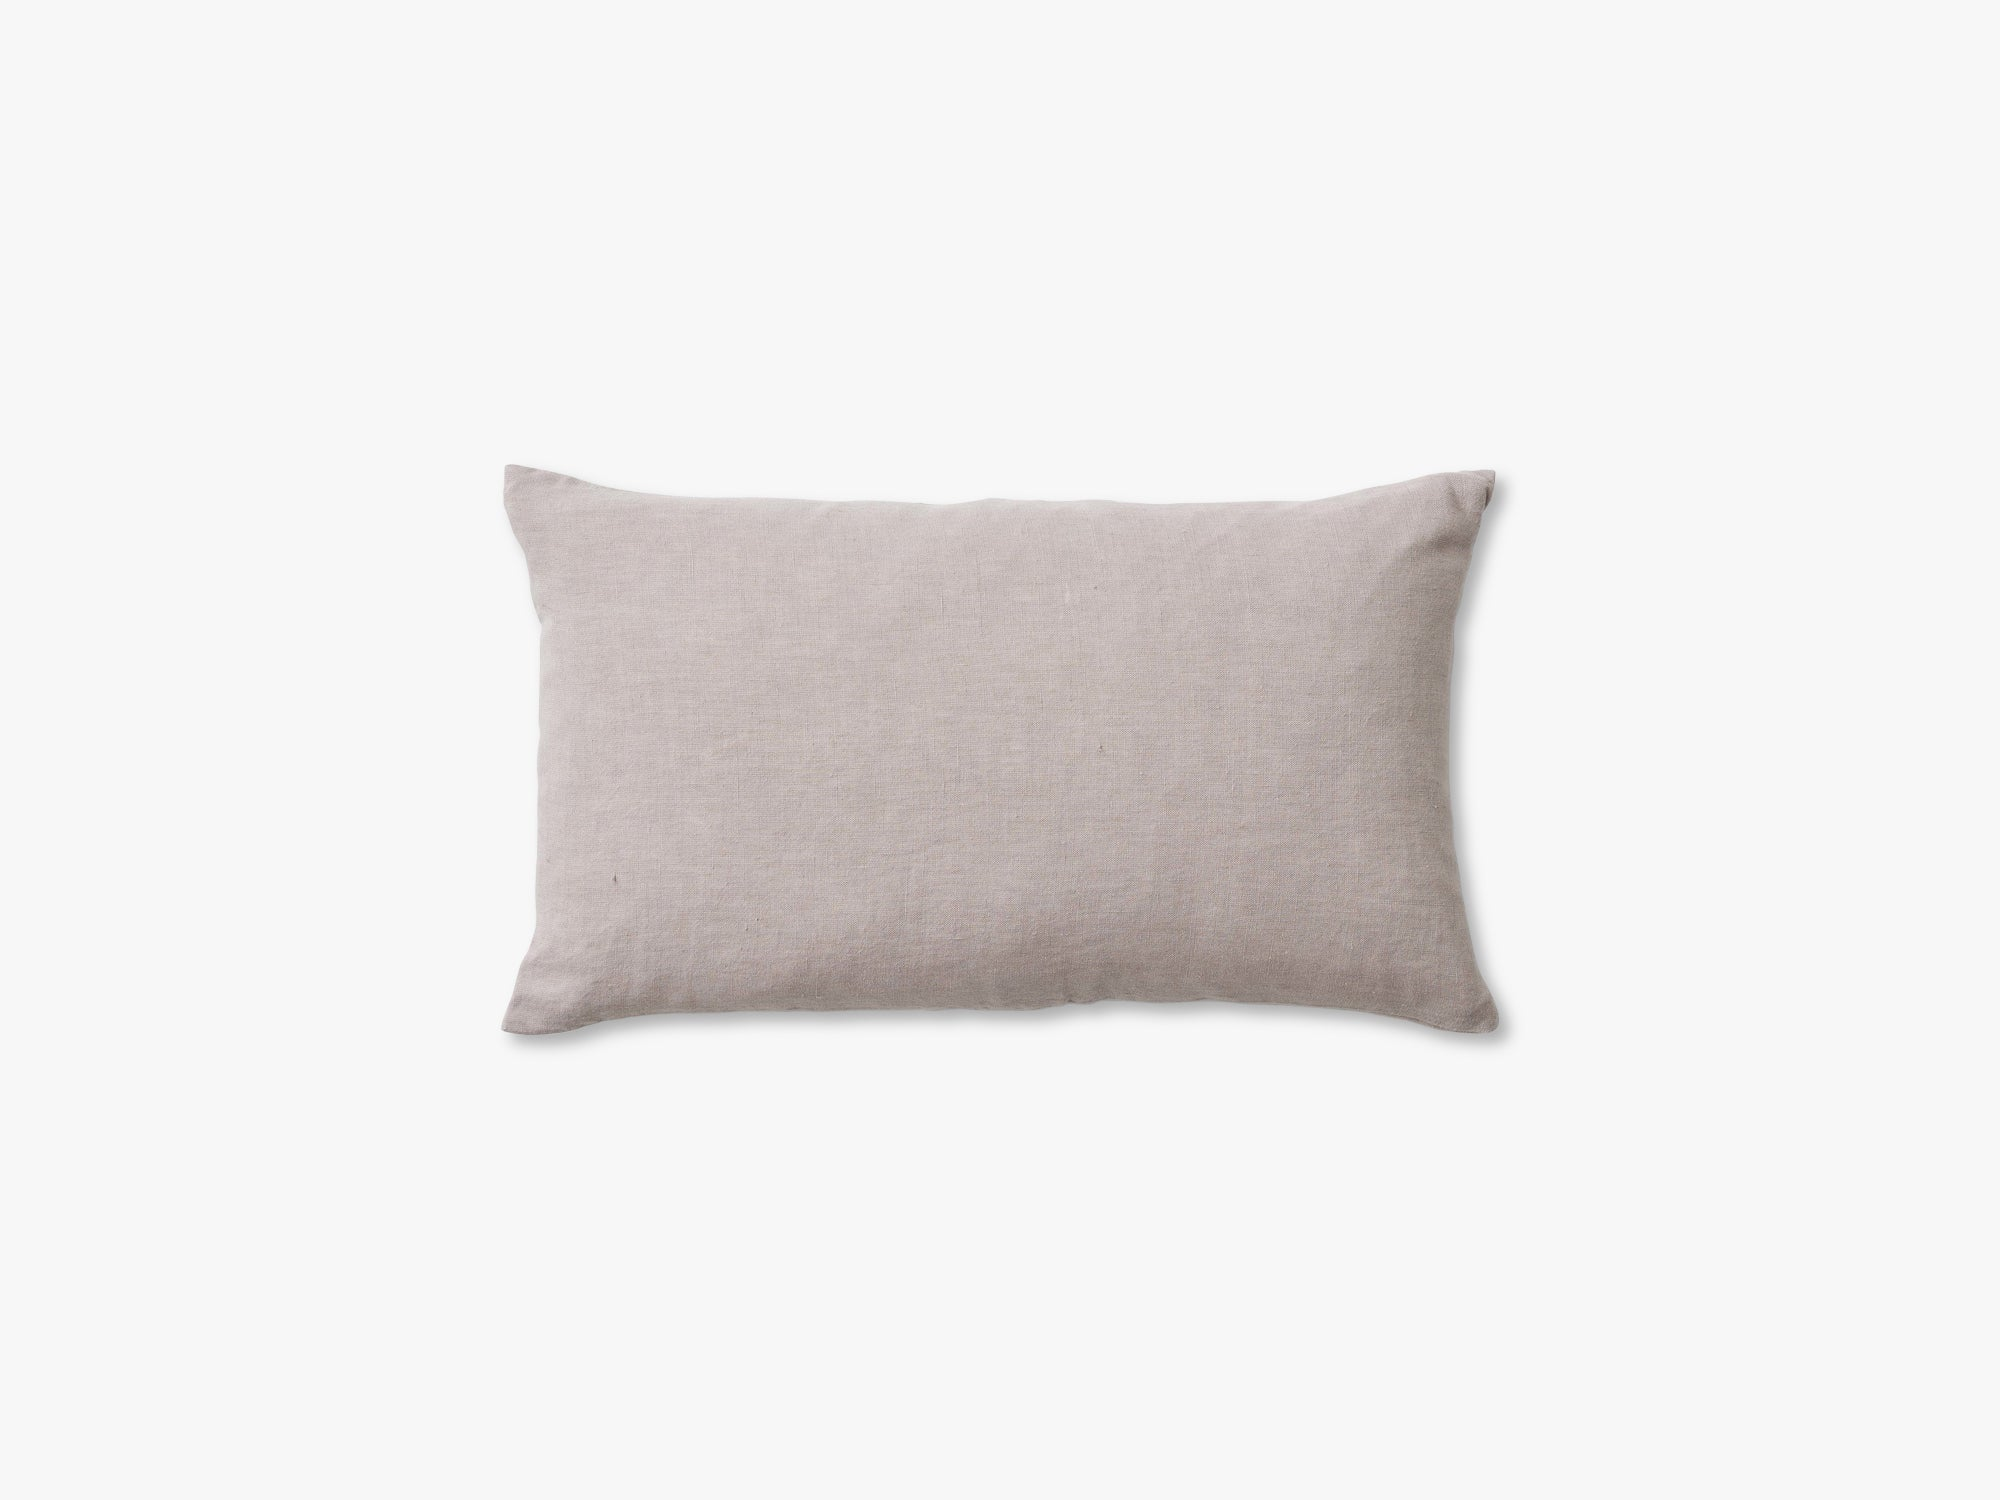 Collect Cushion SC27 - 30x50, Powder/Linen fra &tradition